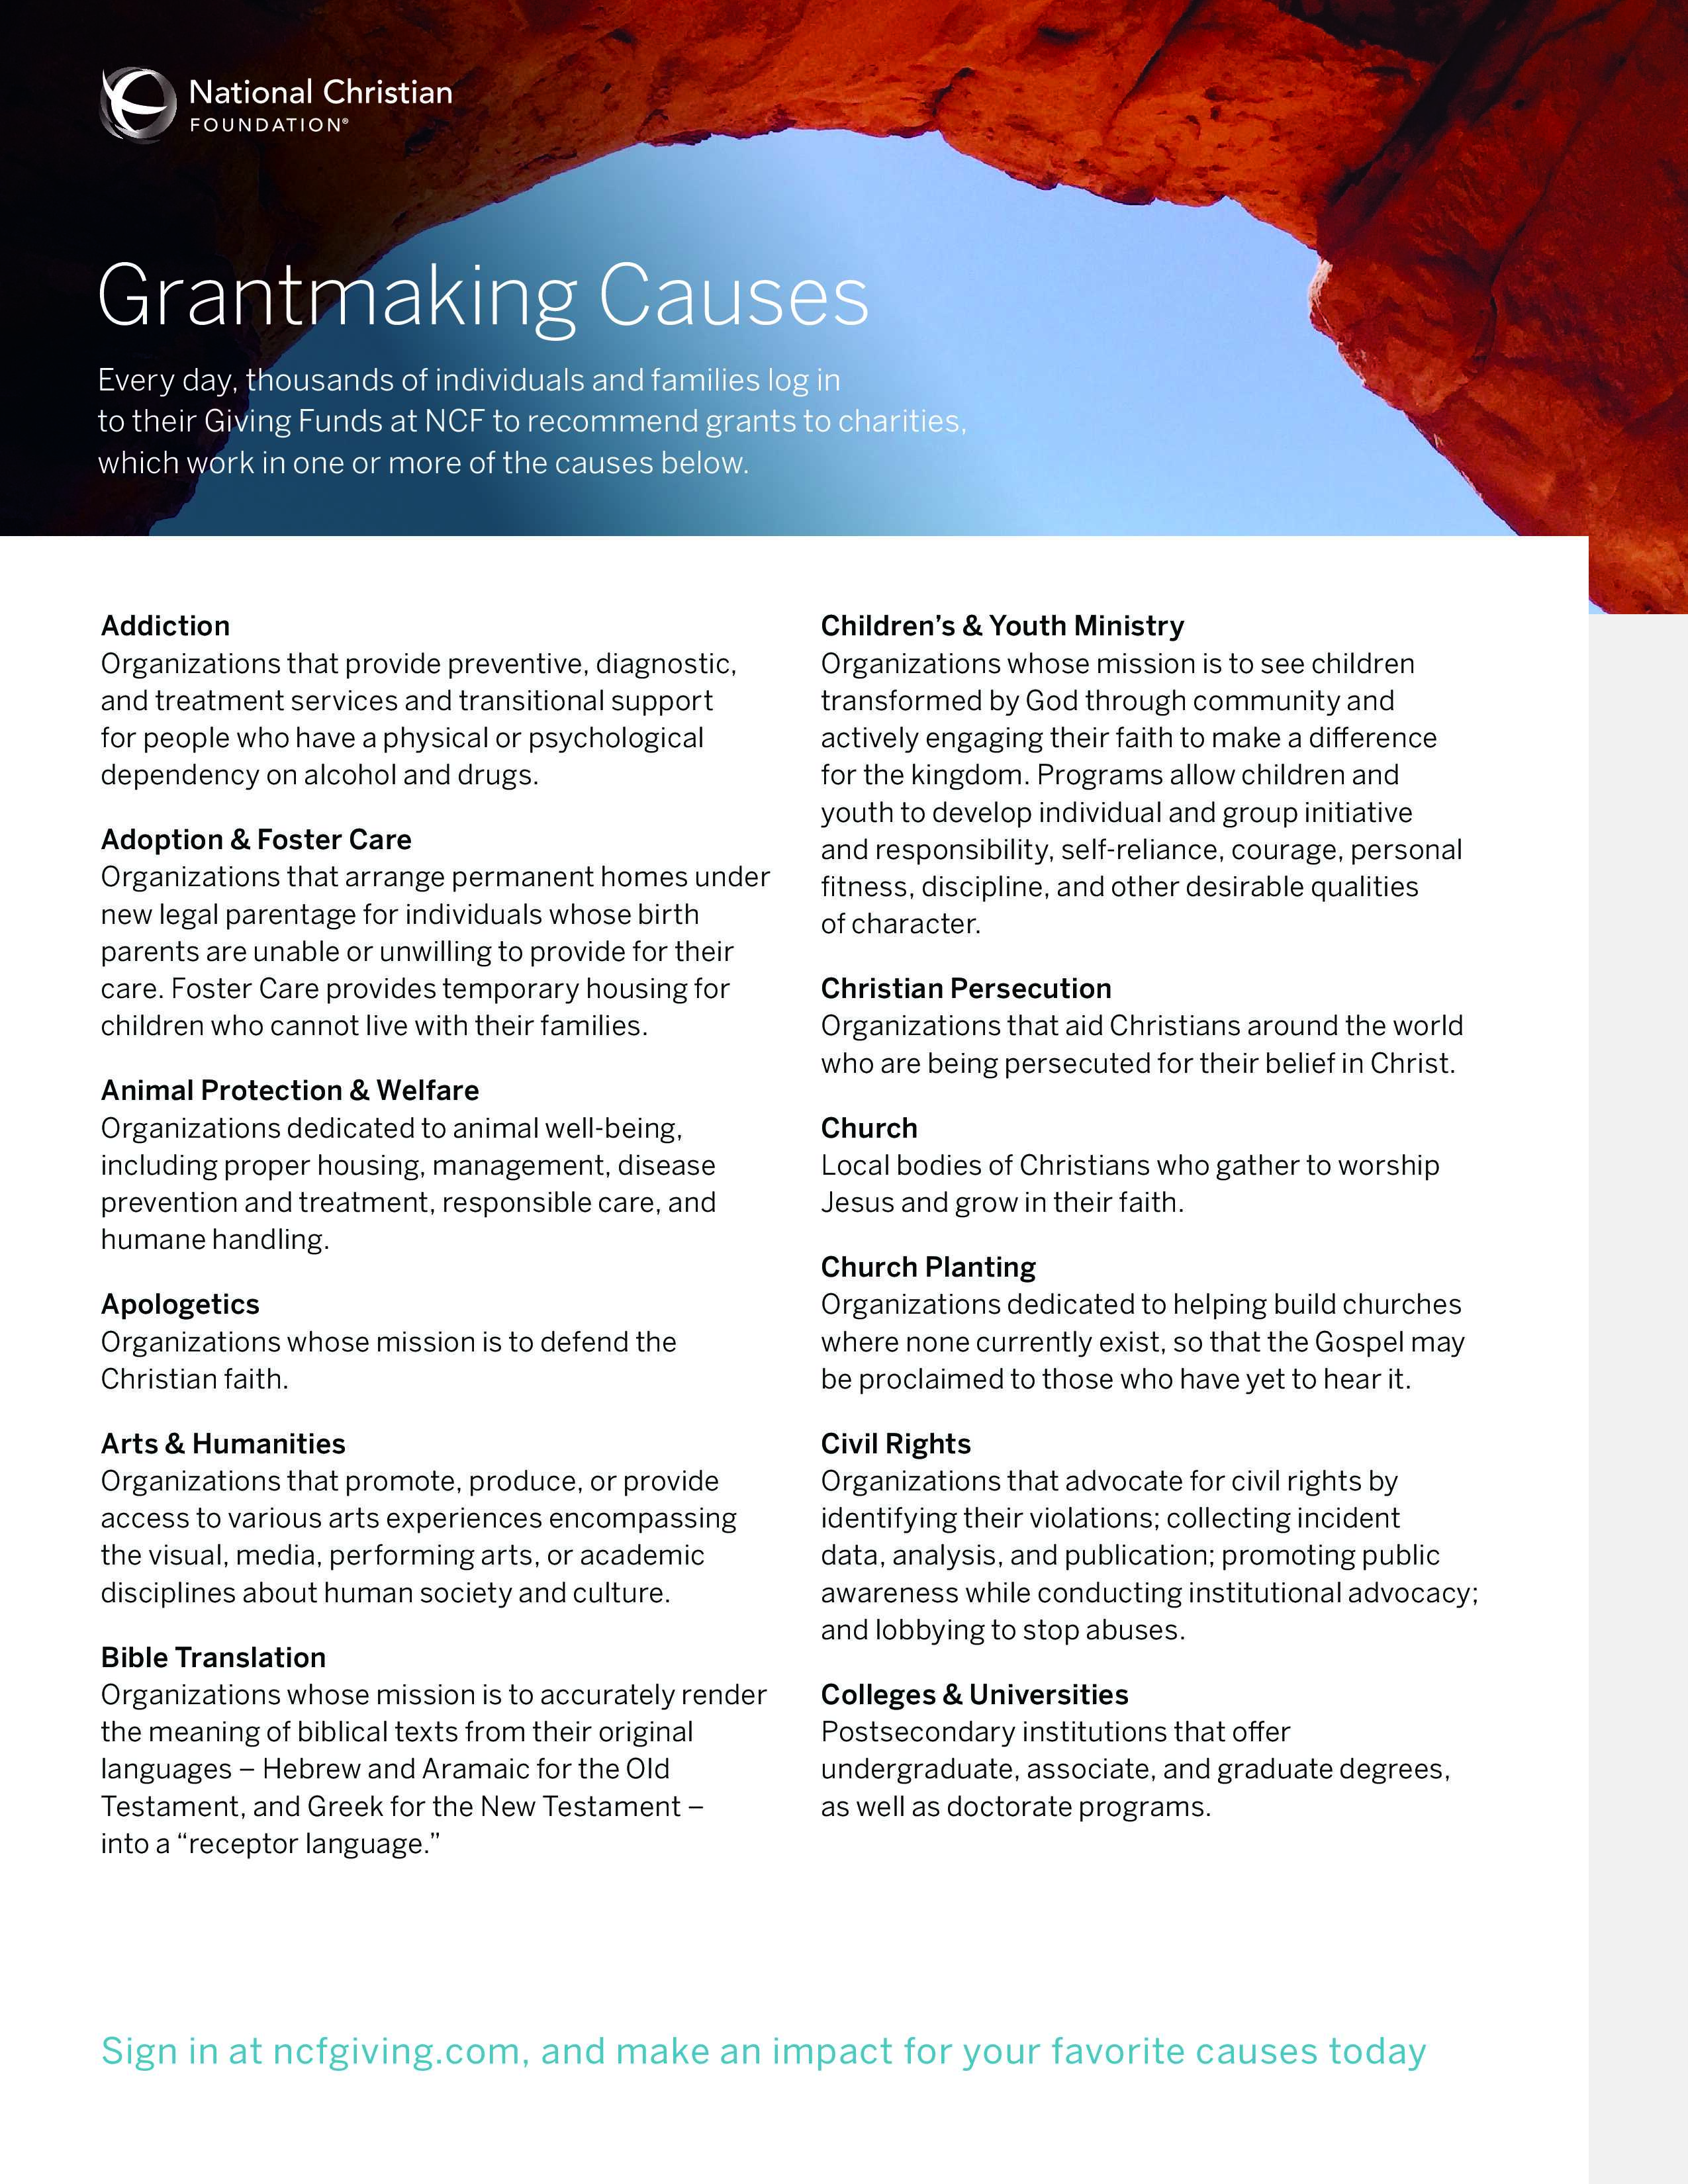 Grantmaking Causes